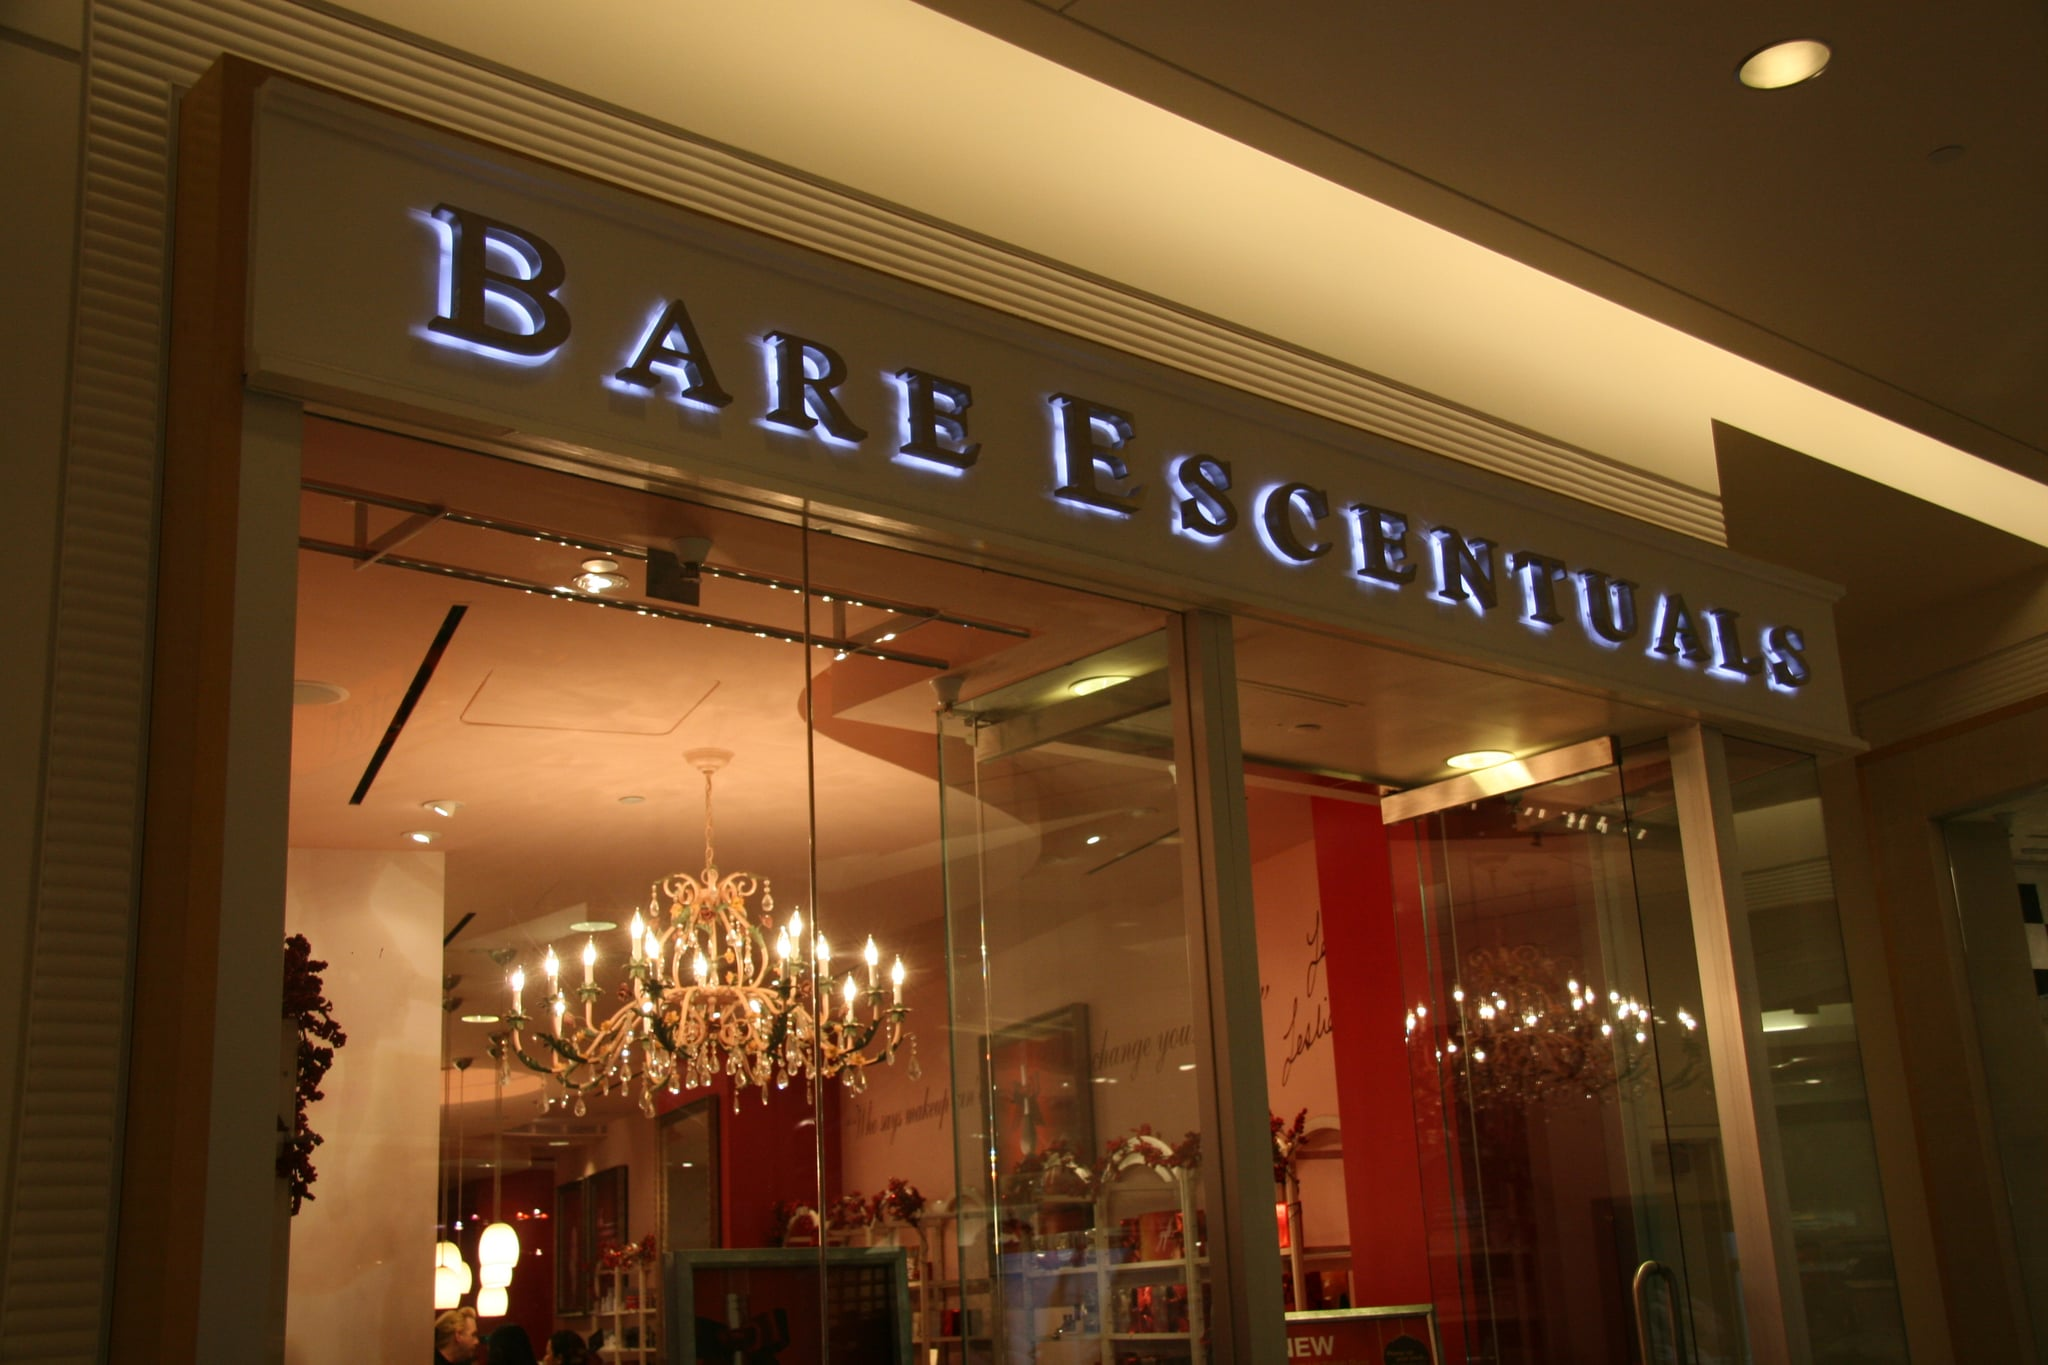 Makeup consultation at Bare Escentuals' flagship store.